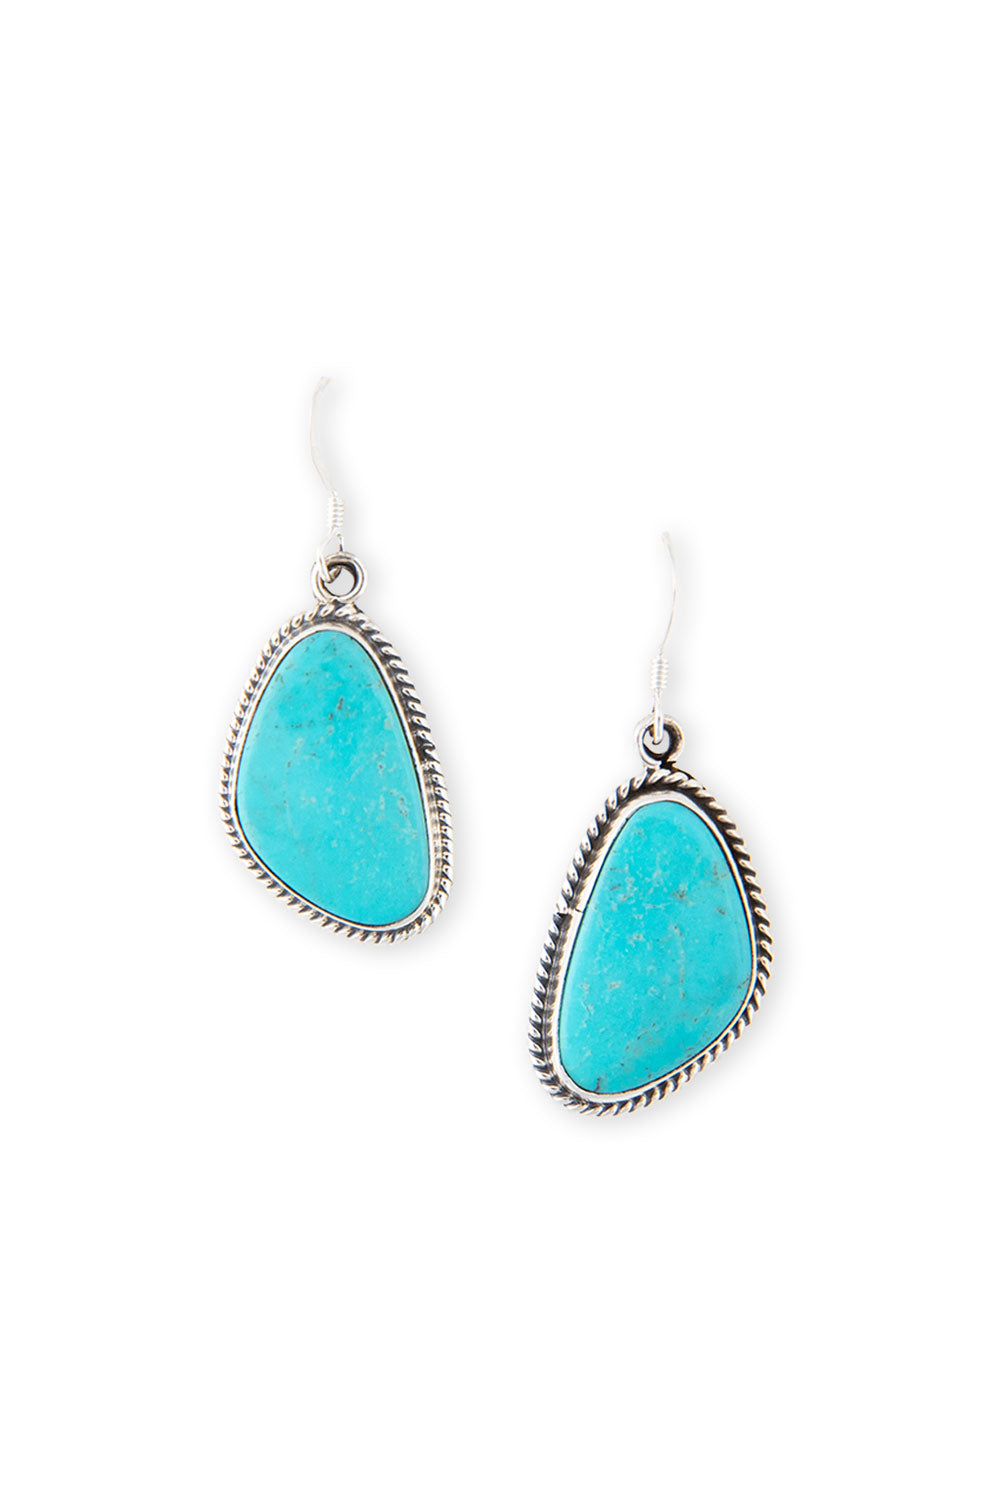 Earrings, Slab, Turquoise, Hallmark, 398